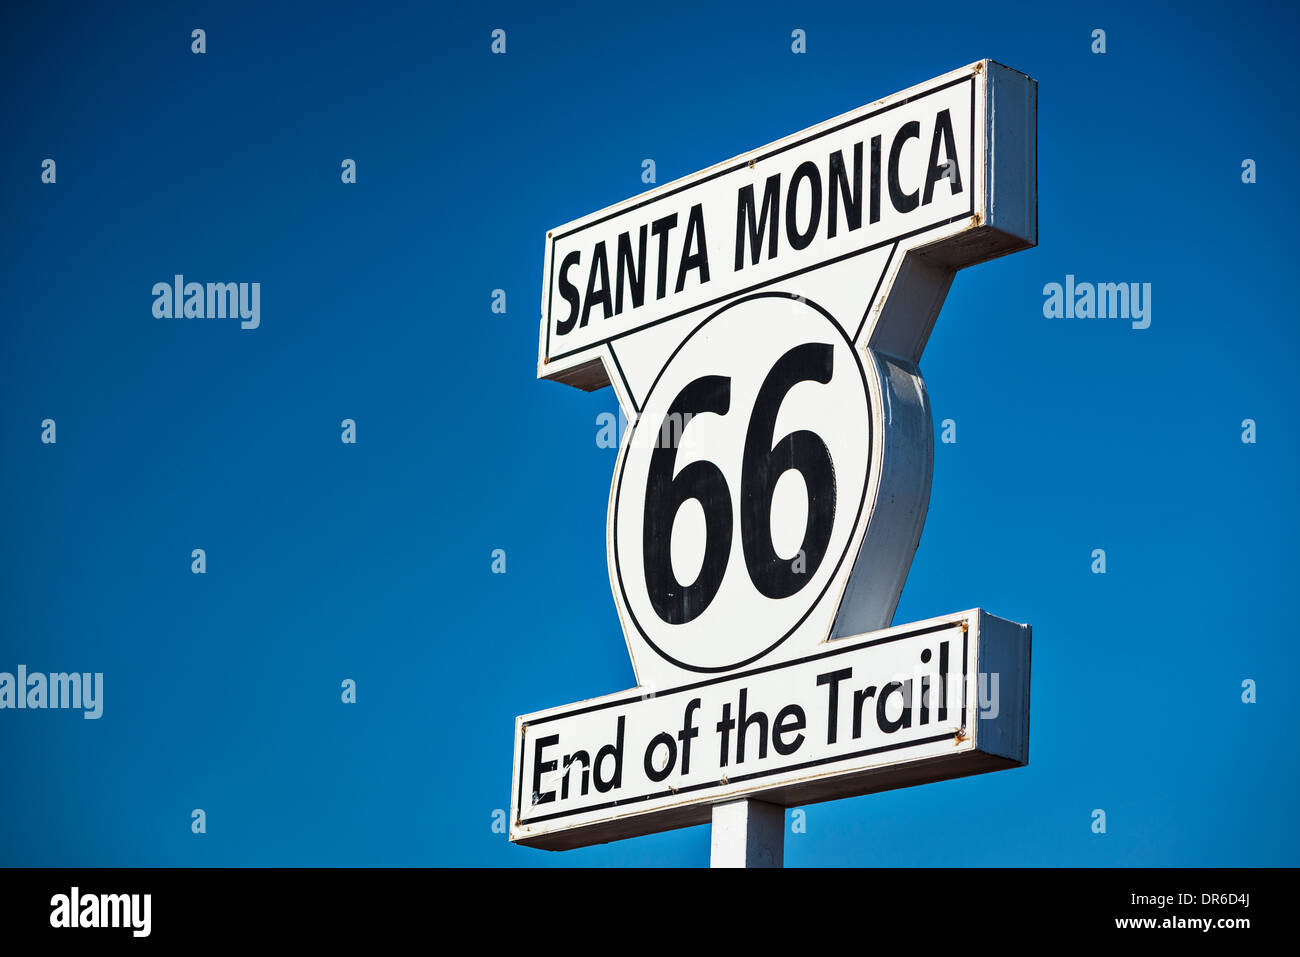 Route 66 End of Trail road sign in Los Angeles, California. - Stock Image